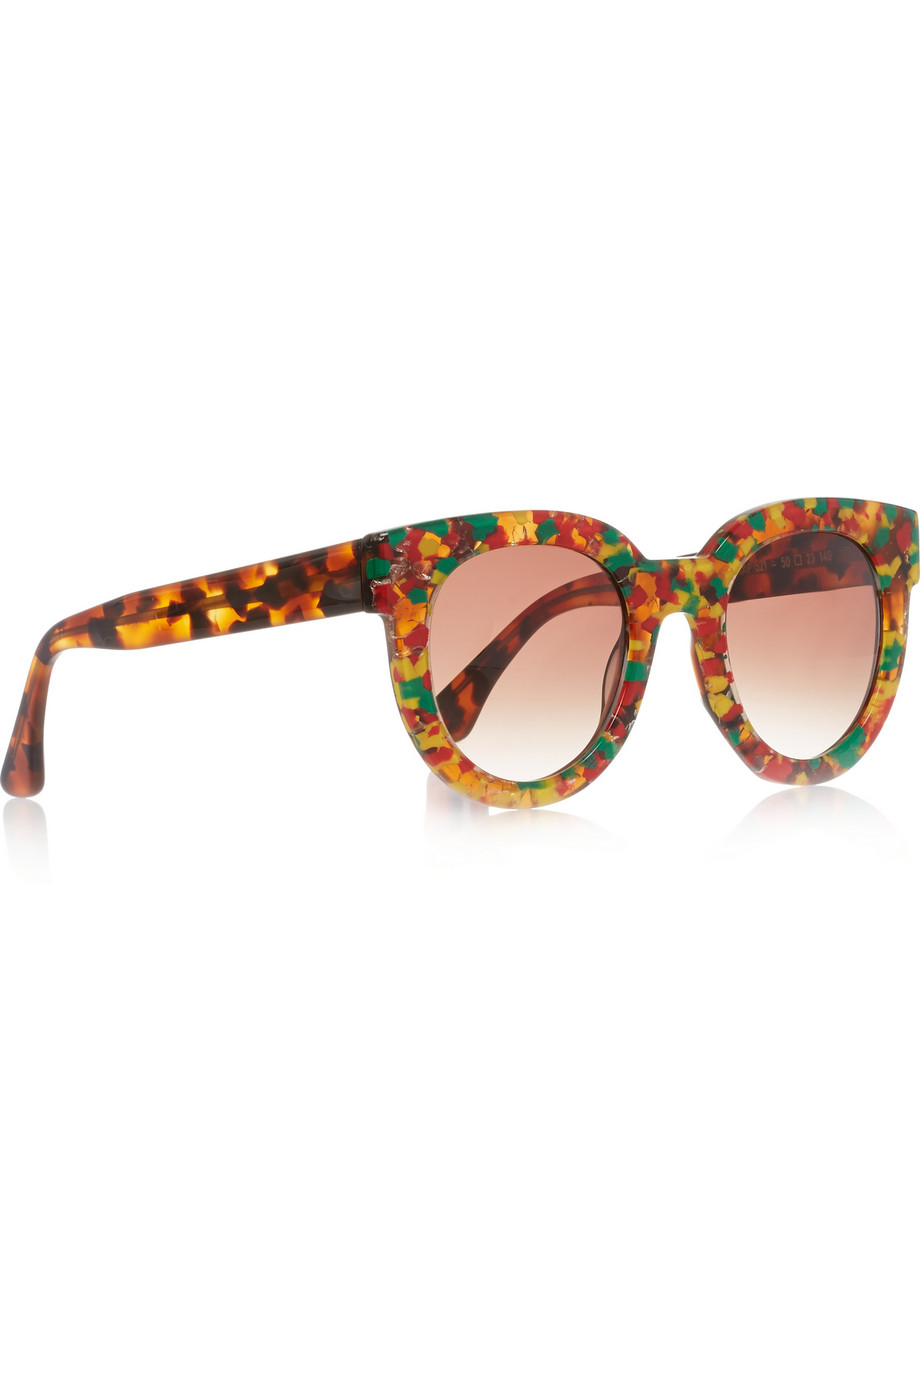 Thierry lasry Therapy Round-Frame Acetate Sunglasses in ...